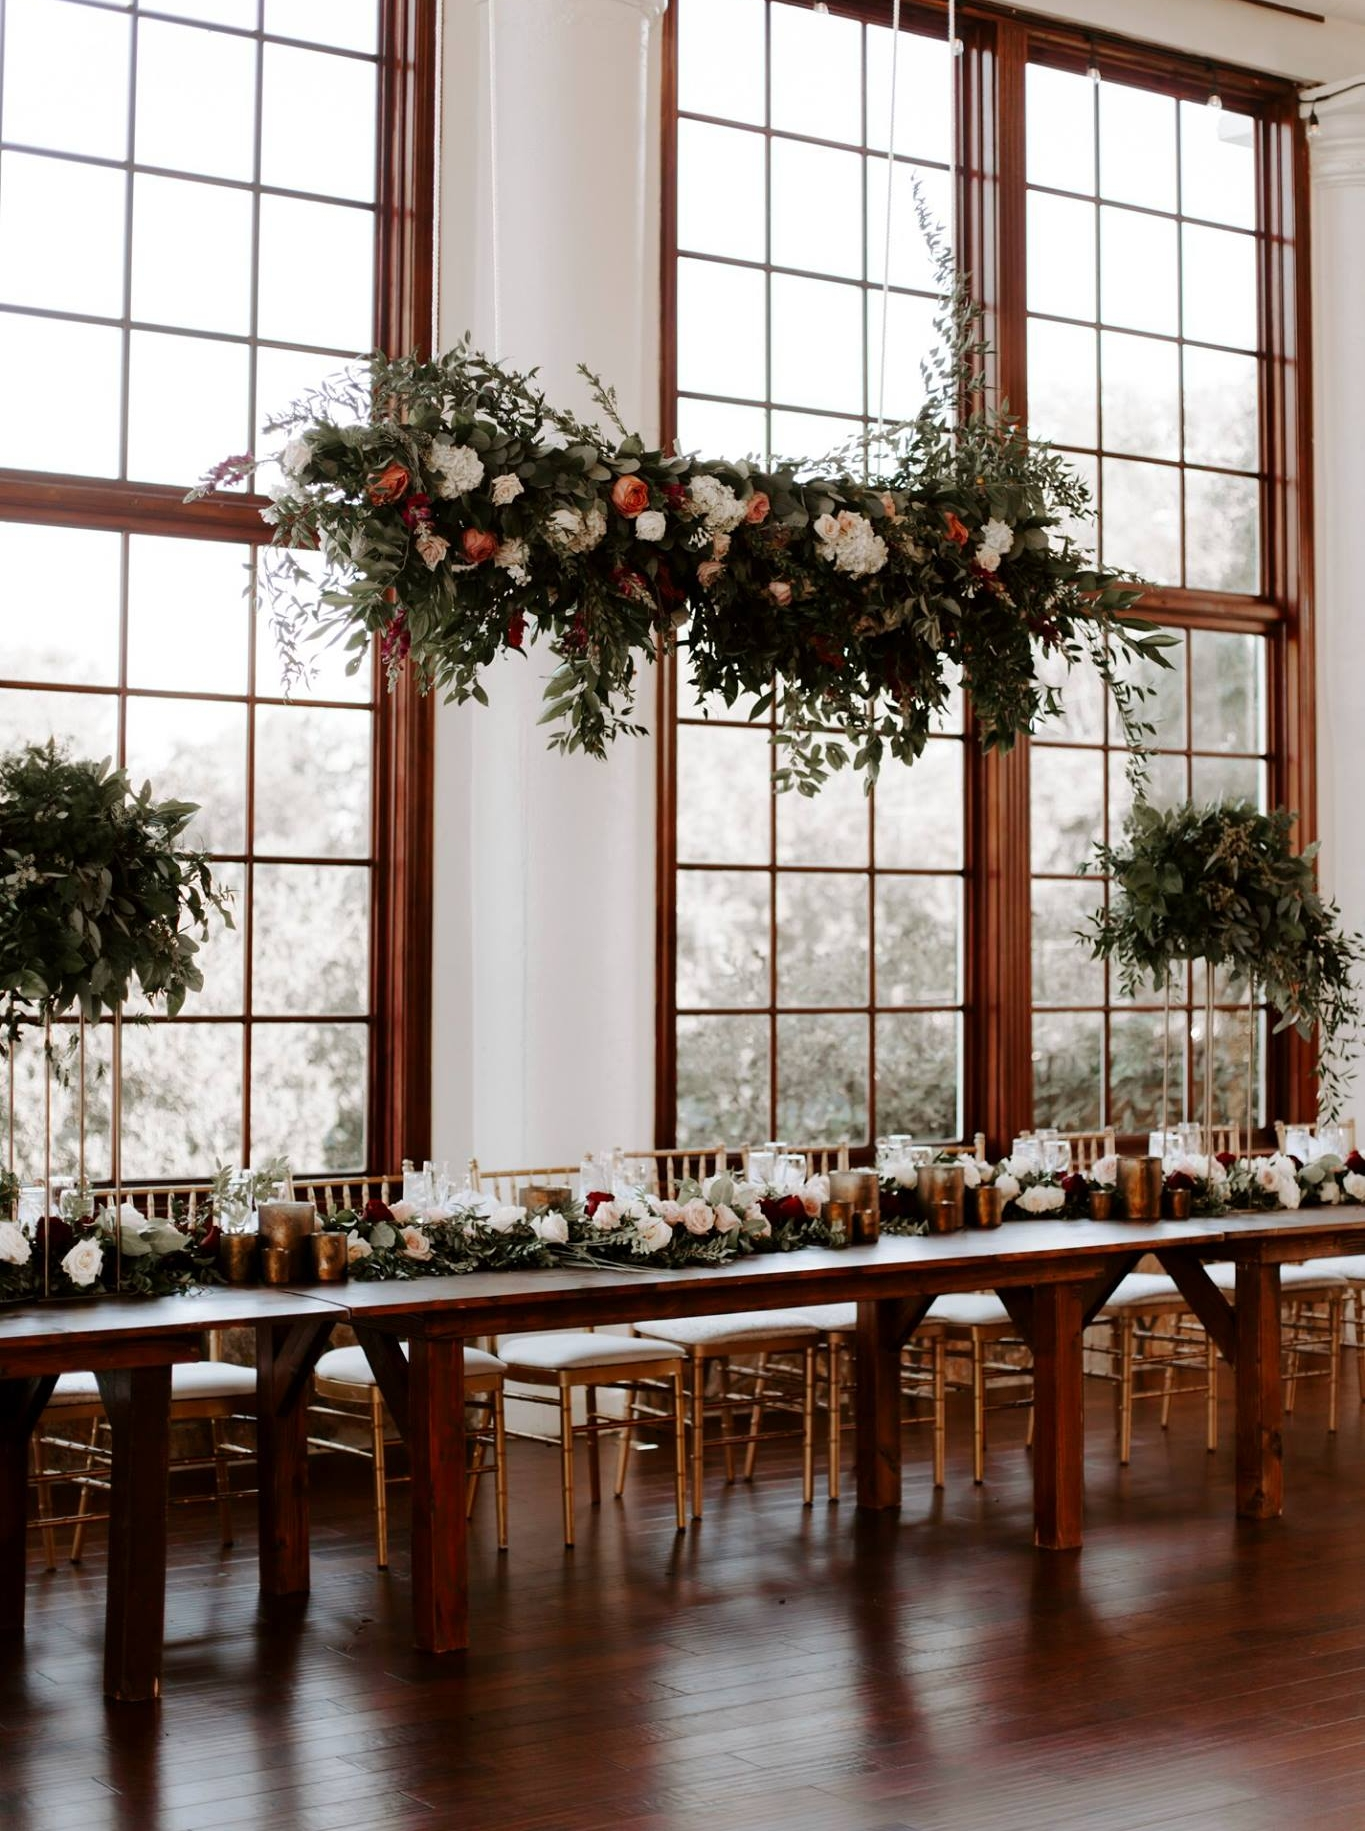 King's table at Raspberry Plain Manor photographed by    We Are the Cashmans   . Tall centerpieces with greenery flank the long table with a raised floral design overhead. Floral garland and bridesmaids bouquets with groupings of votive candles.